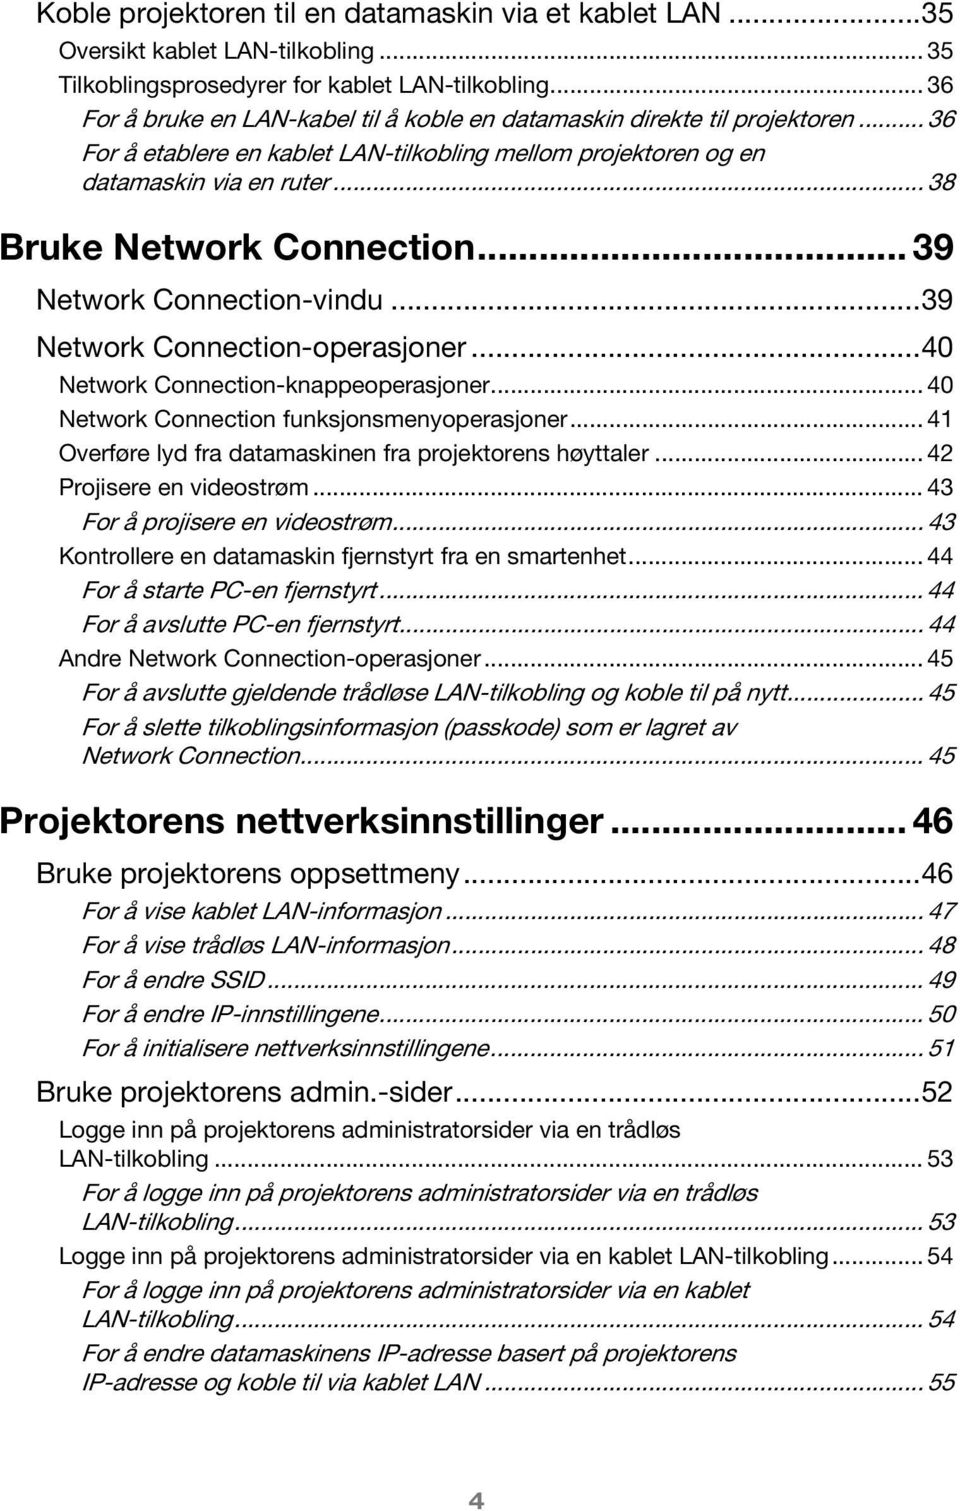 .. 38 Bruke Network Connection... 39 Network Connection-vindu...39 Network Connection-operasjoner...40 Network Connection-knappeoperasjoner... 40 Network Connection funksjonsmenyoperasjoner.